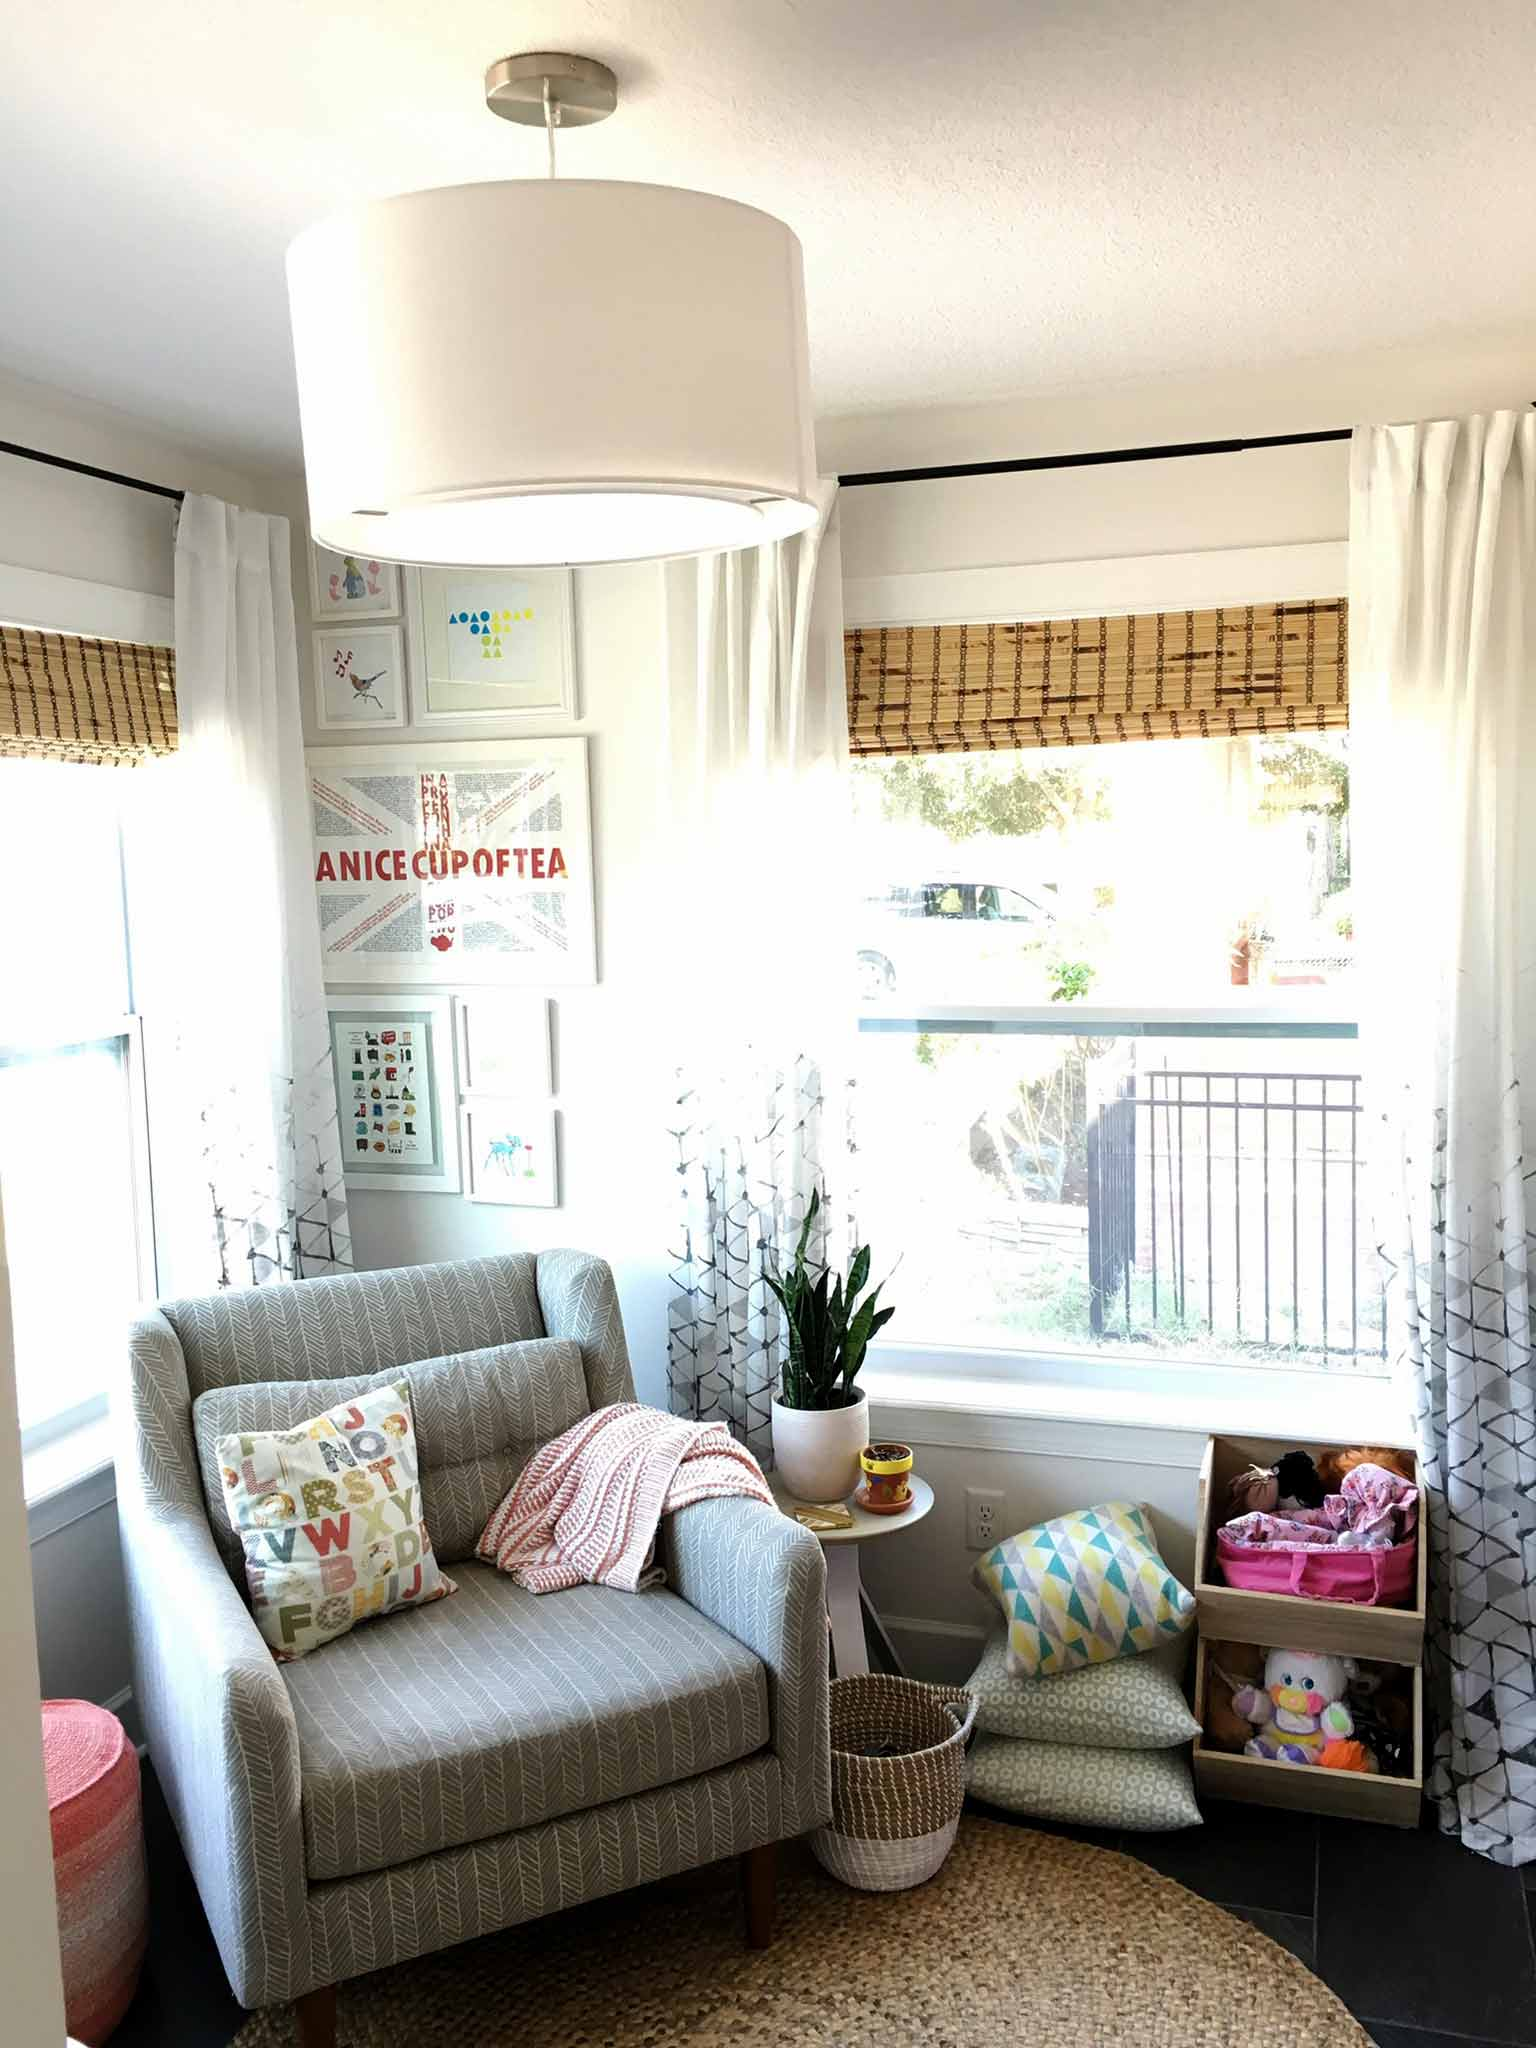 Lined bamboo blinds and sheer curtains - playroom house tour - That Homebird Life Blog